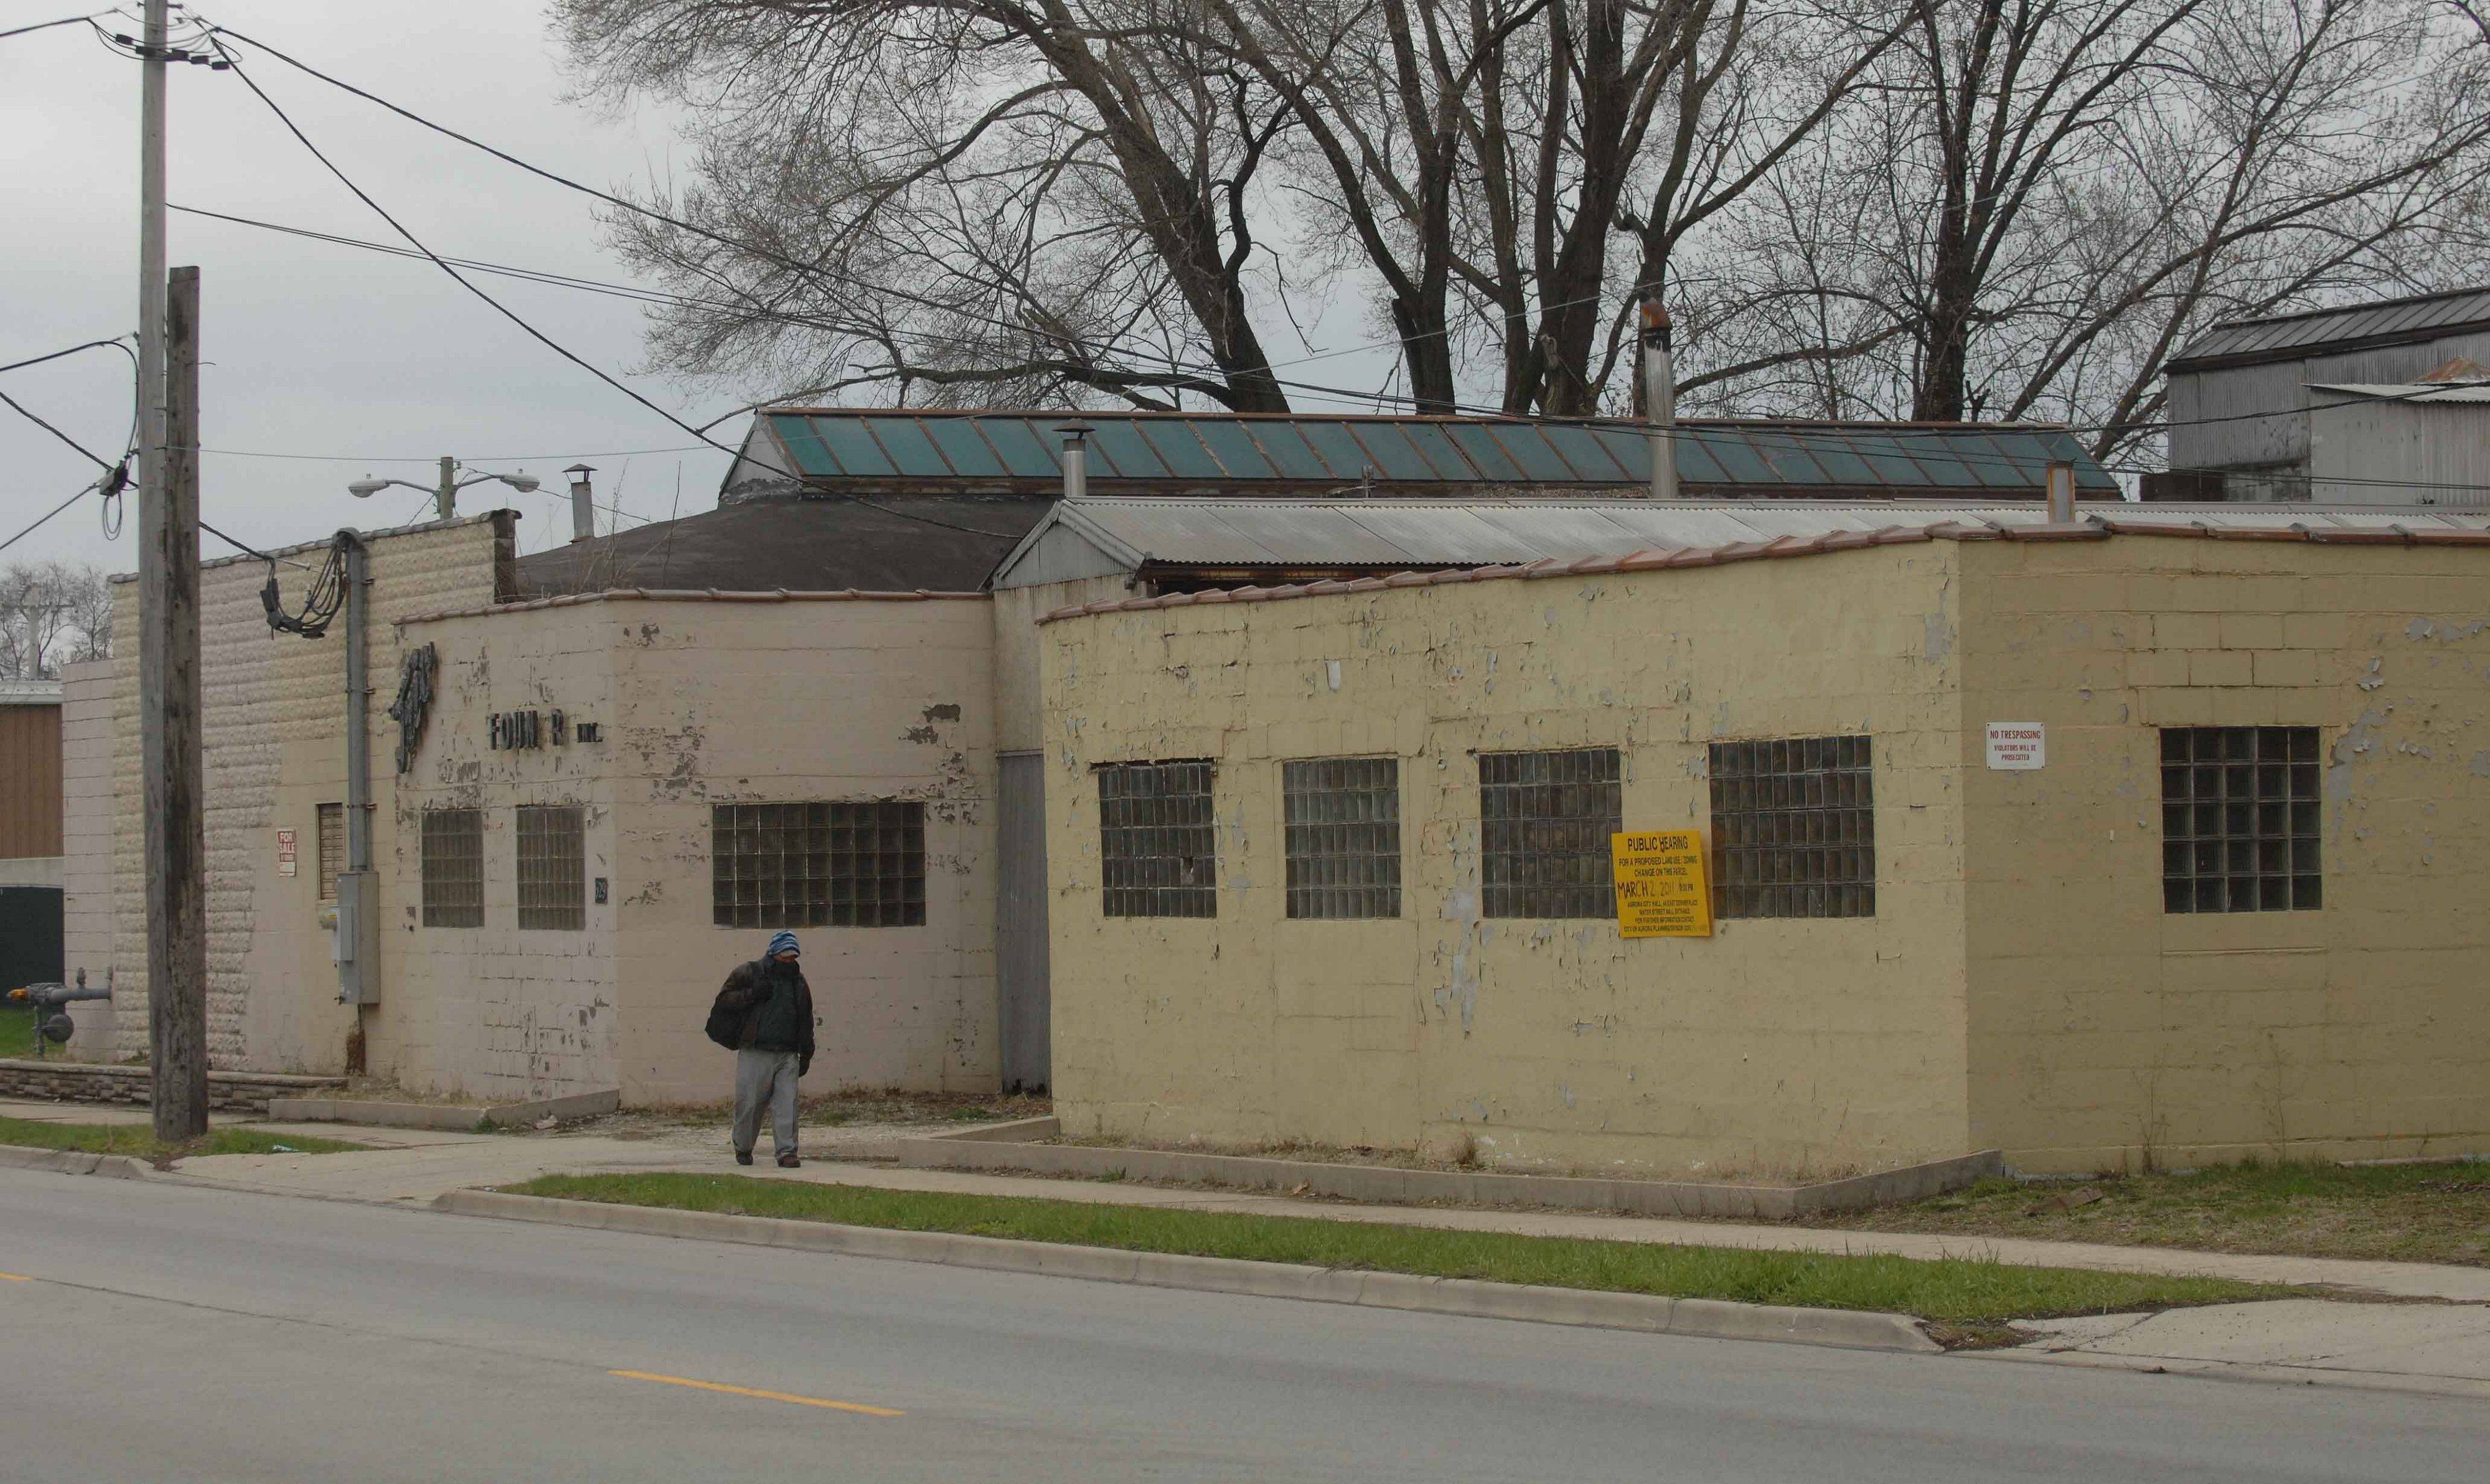 The building at 629 S. River St. in Aurora stands vacant, but city council Tuesday night granted a conditional use permit to allow Fermin's Poultry to slaughter and sell chicken and other foul at the site.